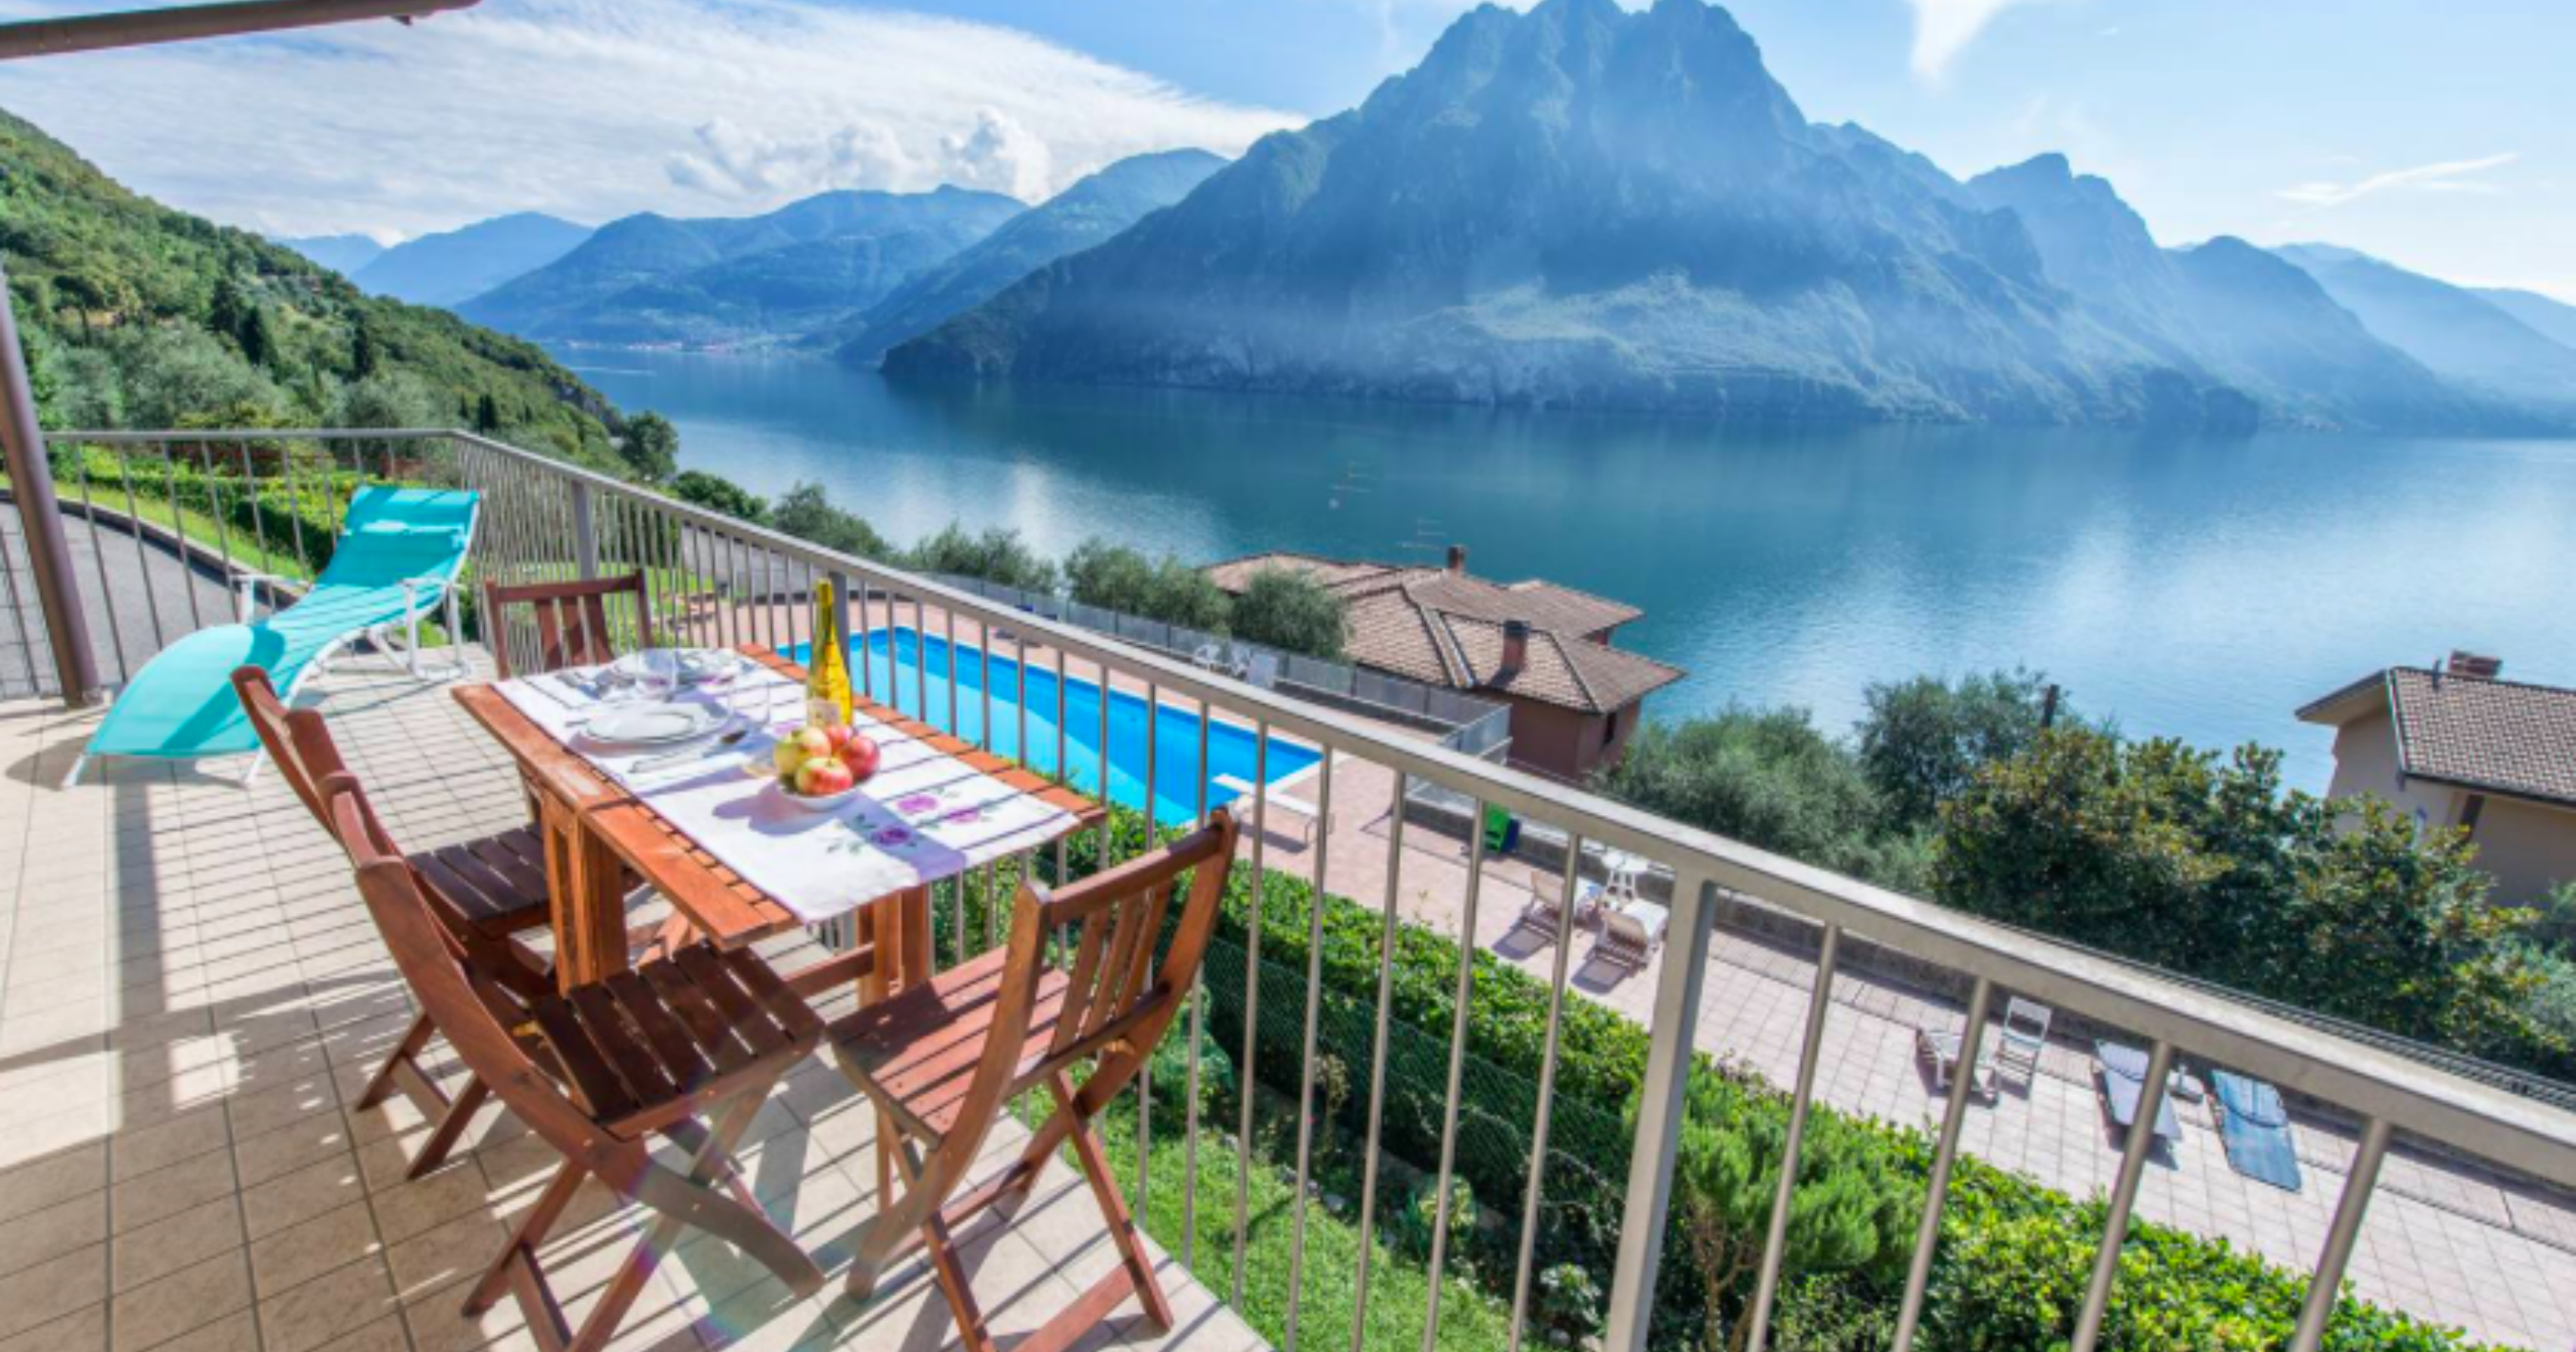 These Are Airbnb's Most 'Wish-Listed' Homes